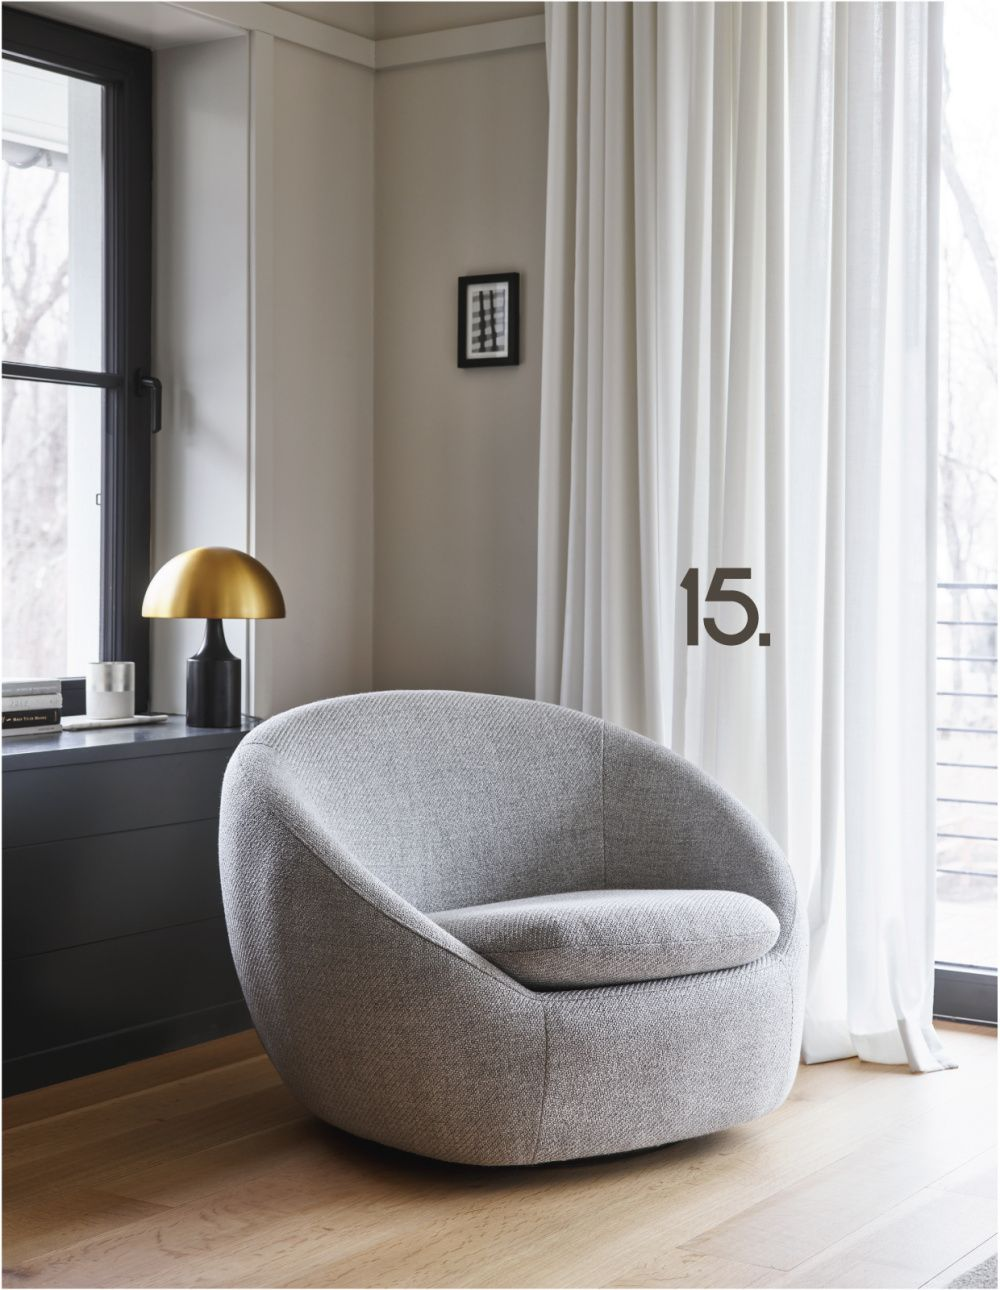 16 Of The Best Designer Statement Chairs In 2020 Timeless Furniture Retro Lounge Statement Armchairs